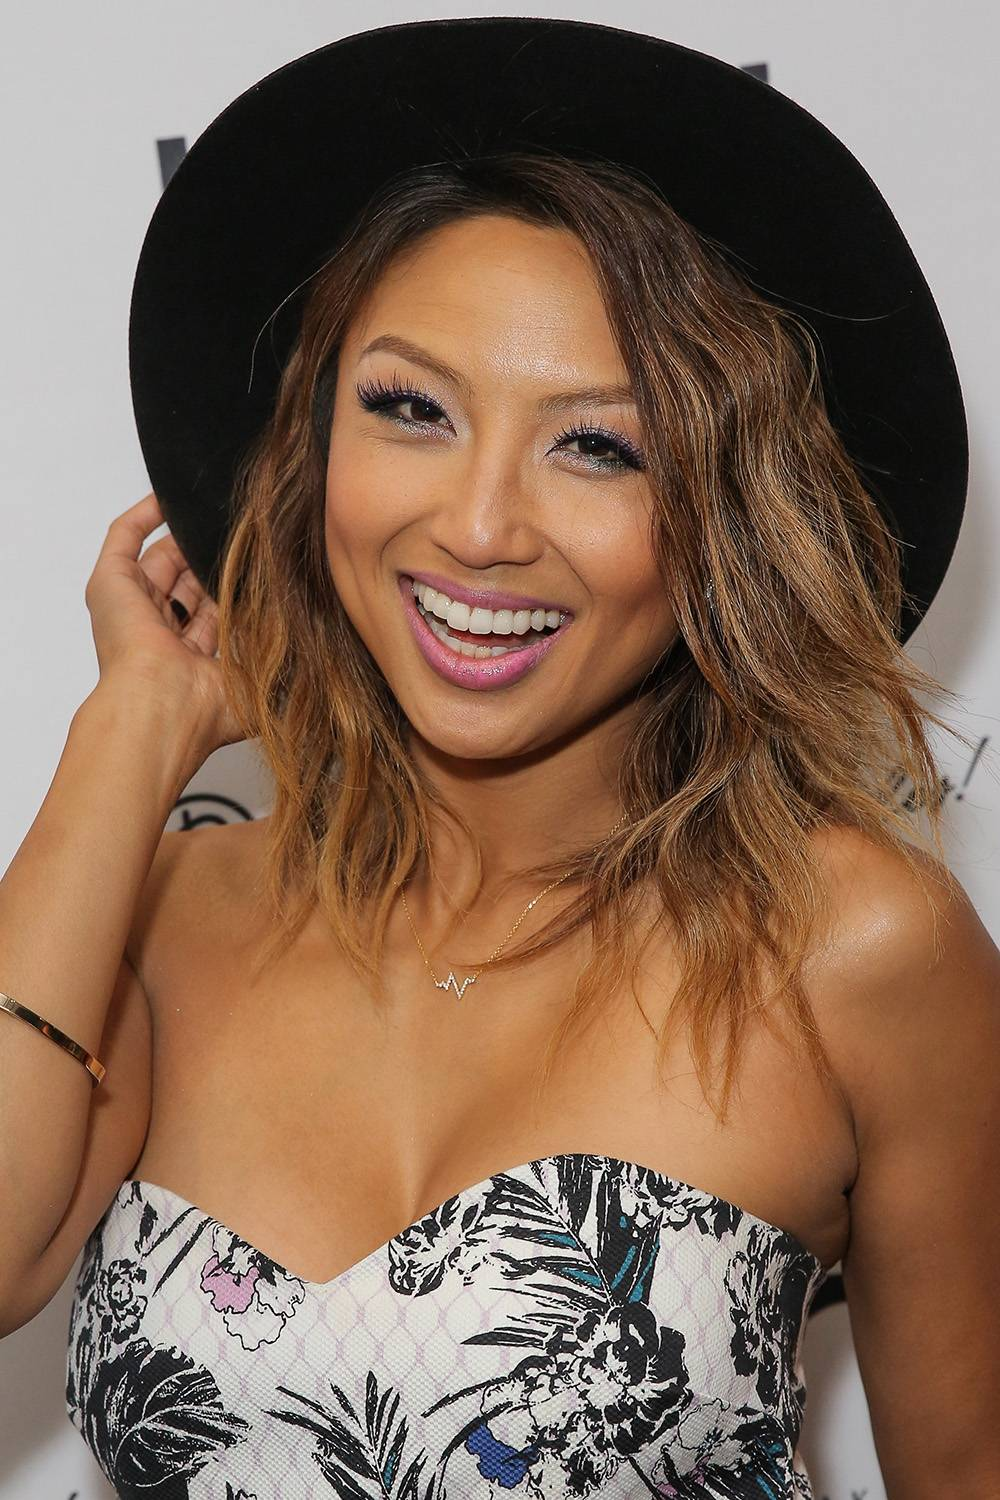 Mai, Mai, Mai - When fashionista and makeup artist Jeannie Mai isn't styling celebrities, hosting The Realor dishing out some #Wearapy advice, she's busy planning her next volunteer trip to Asia or documenting her latest foodie find on her website!(Photo: Chelsea Lauren/Getty Images for NYX Cosmetics)